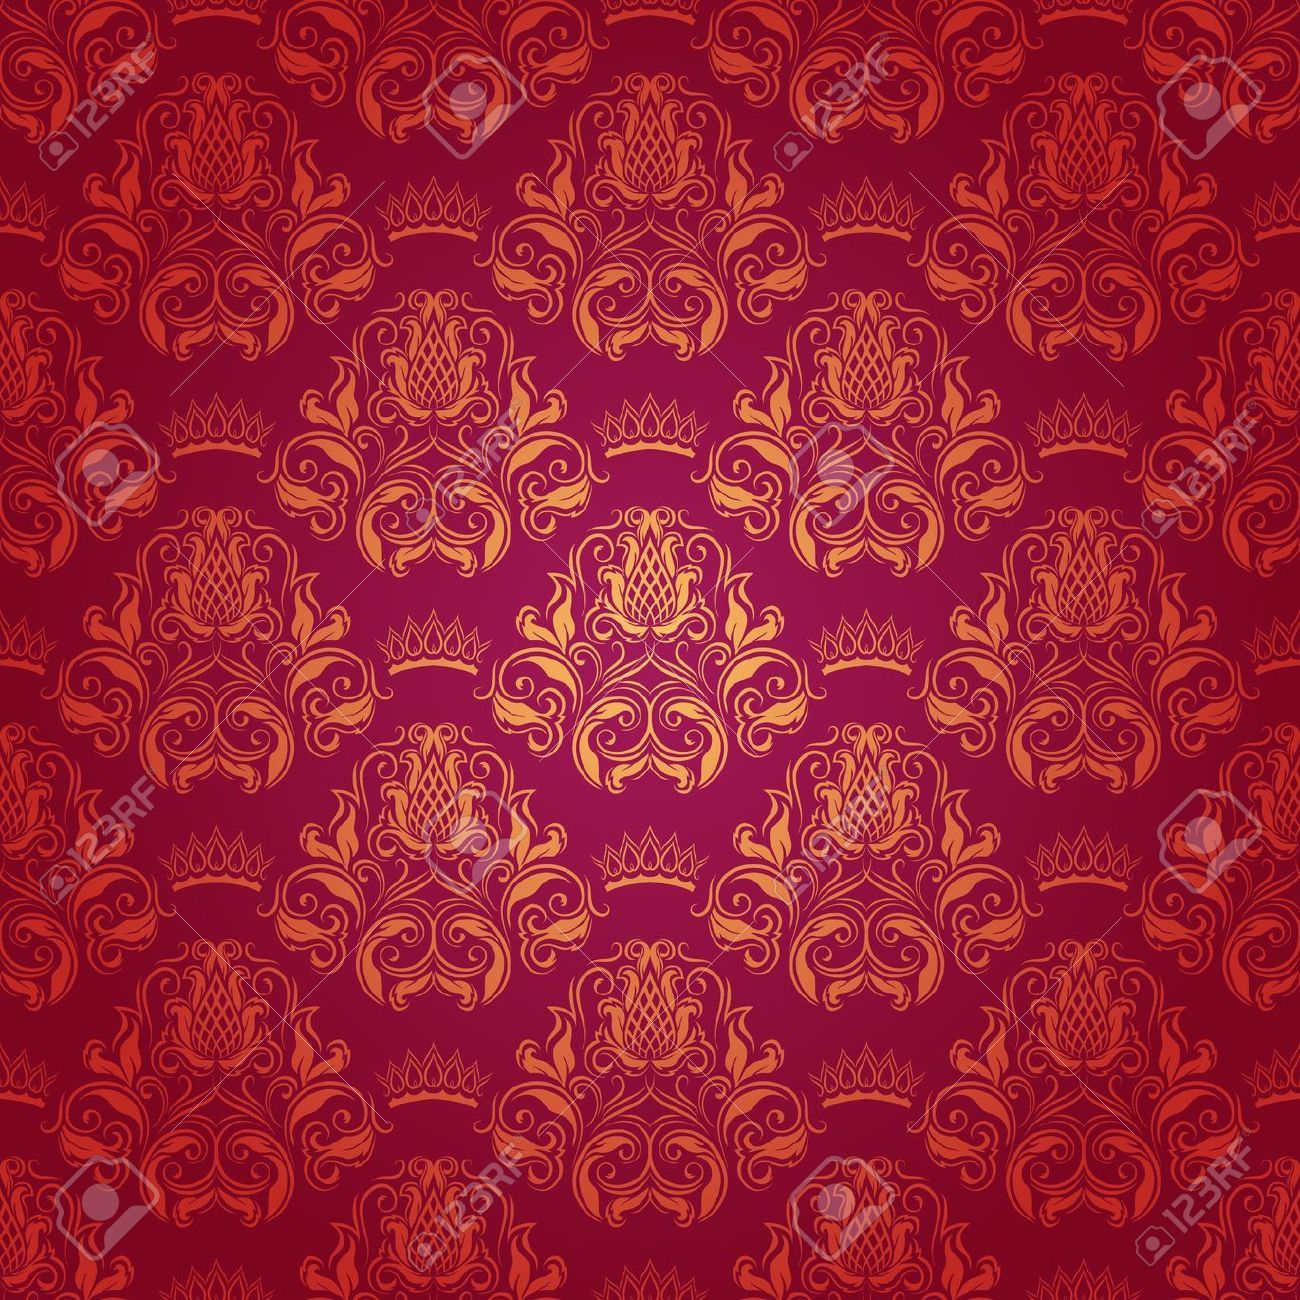 Pattern Red Floral Wallpaper Collection 11 Wallpapers